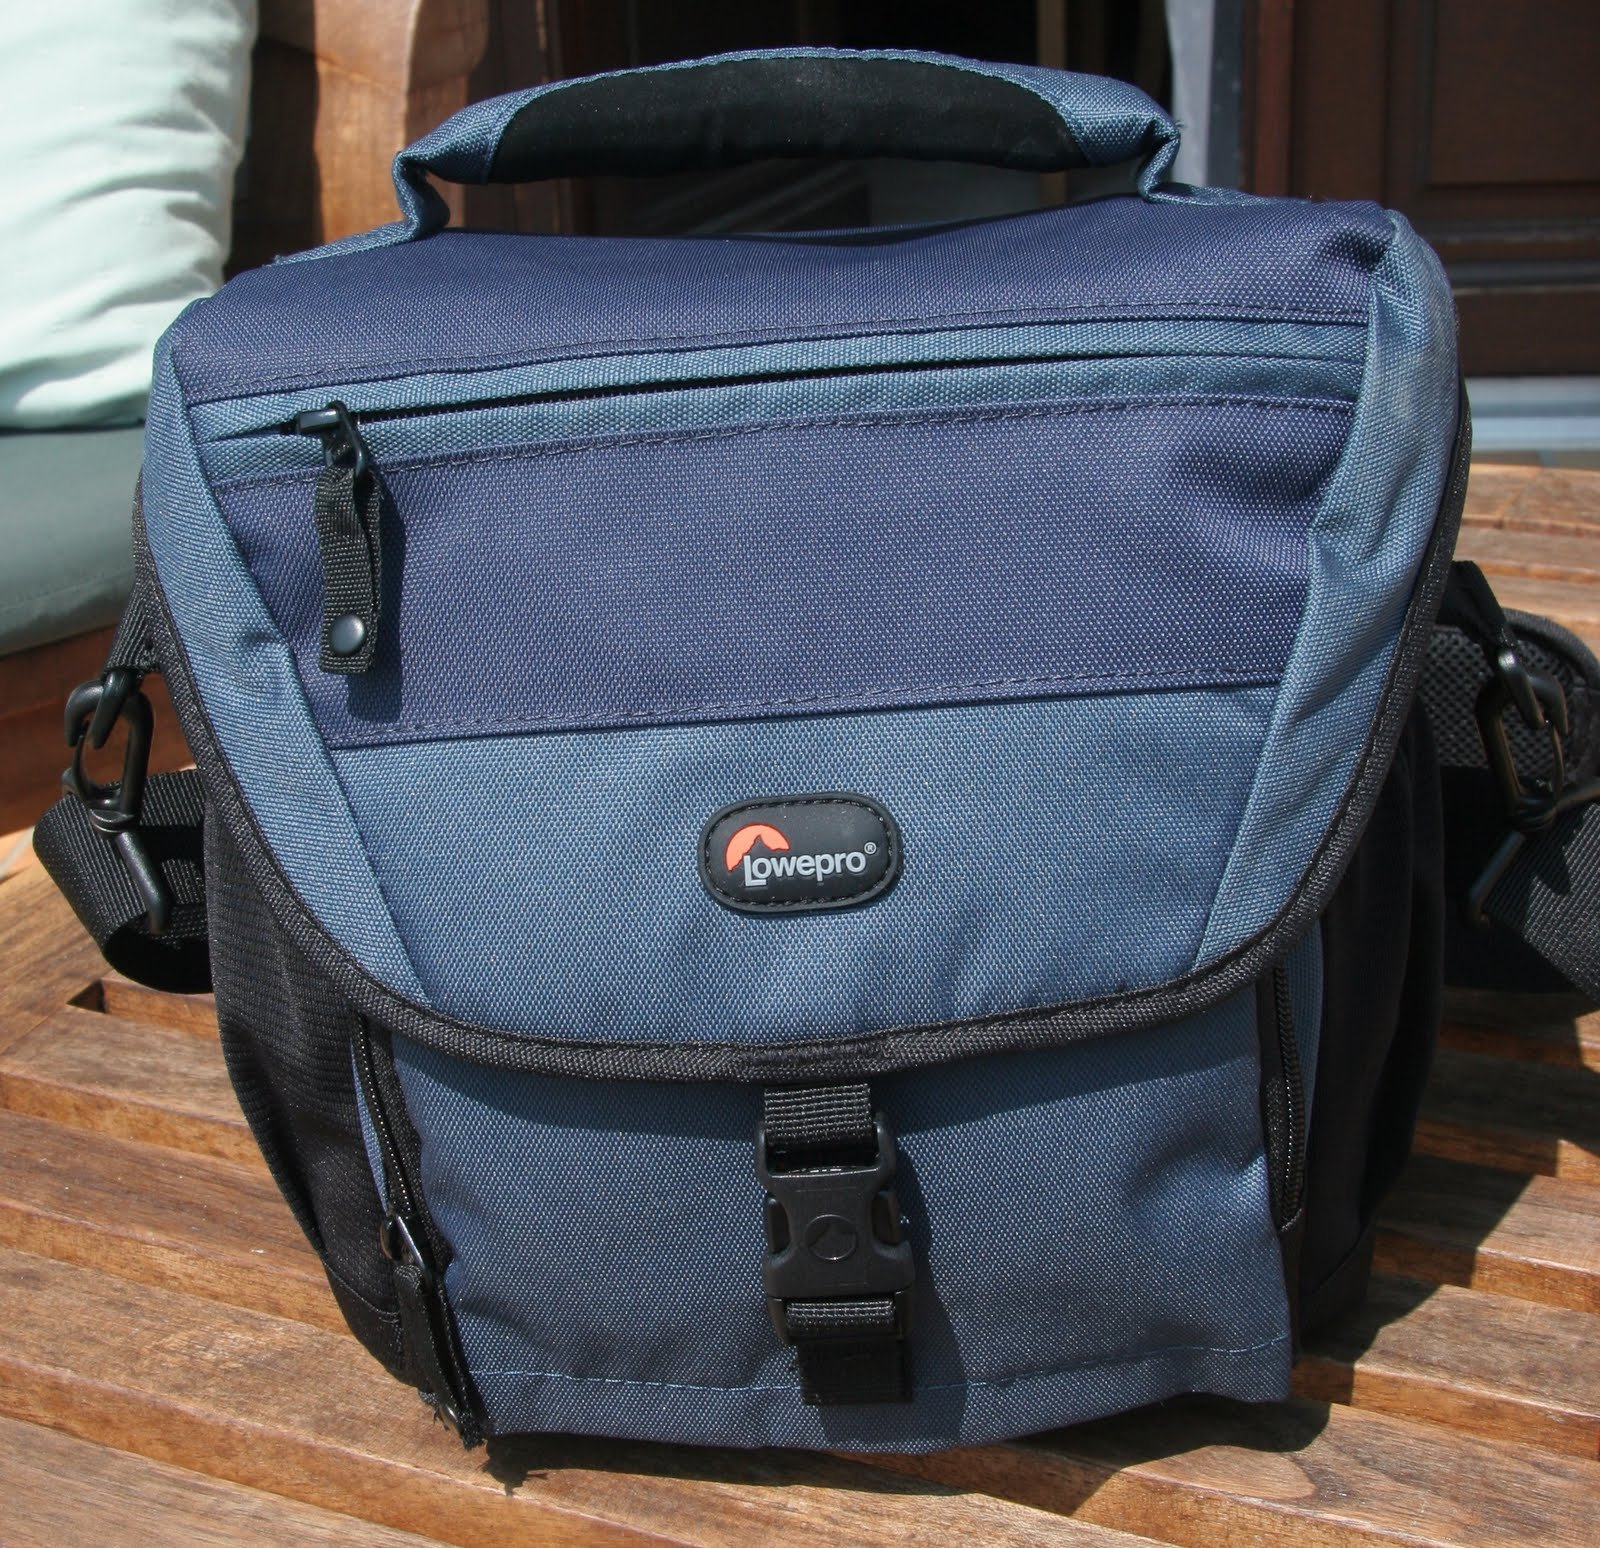 Bags Can You Ever Have Enough 2011 Lowepro Orion Aw The Bag Has A Main Compartment Plus Other Pockets And Additional Elasticated At Either End In Addition To Carry Handle There Is Decent